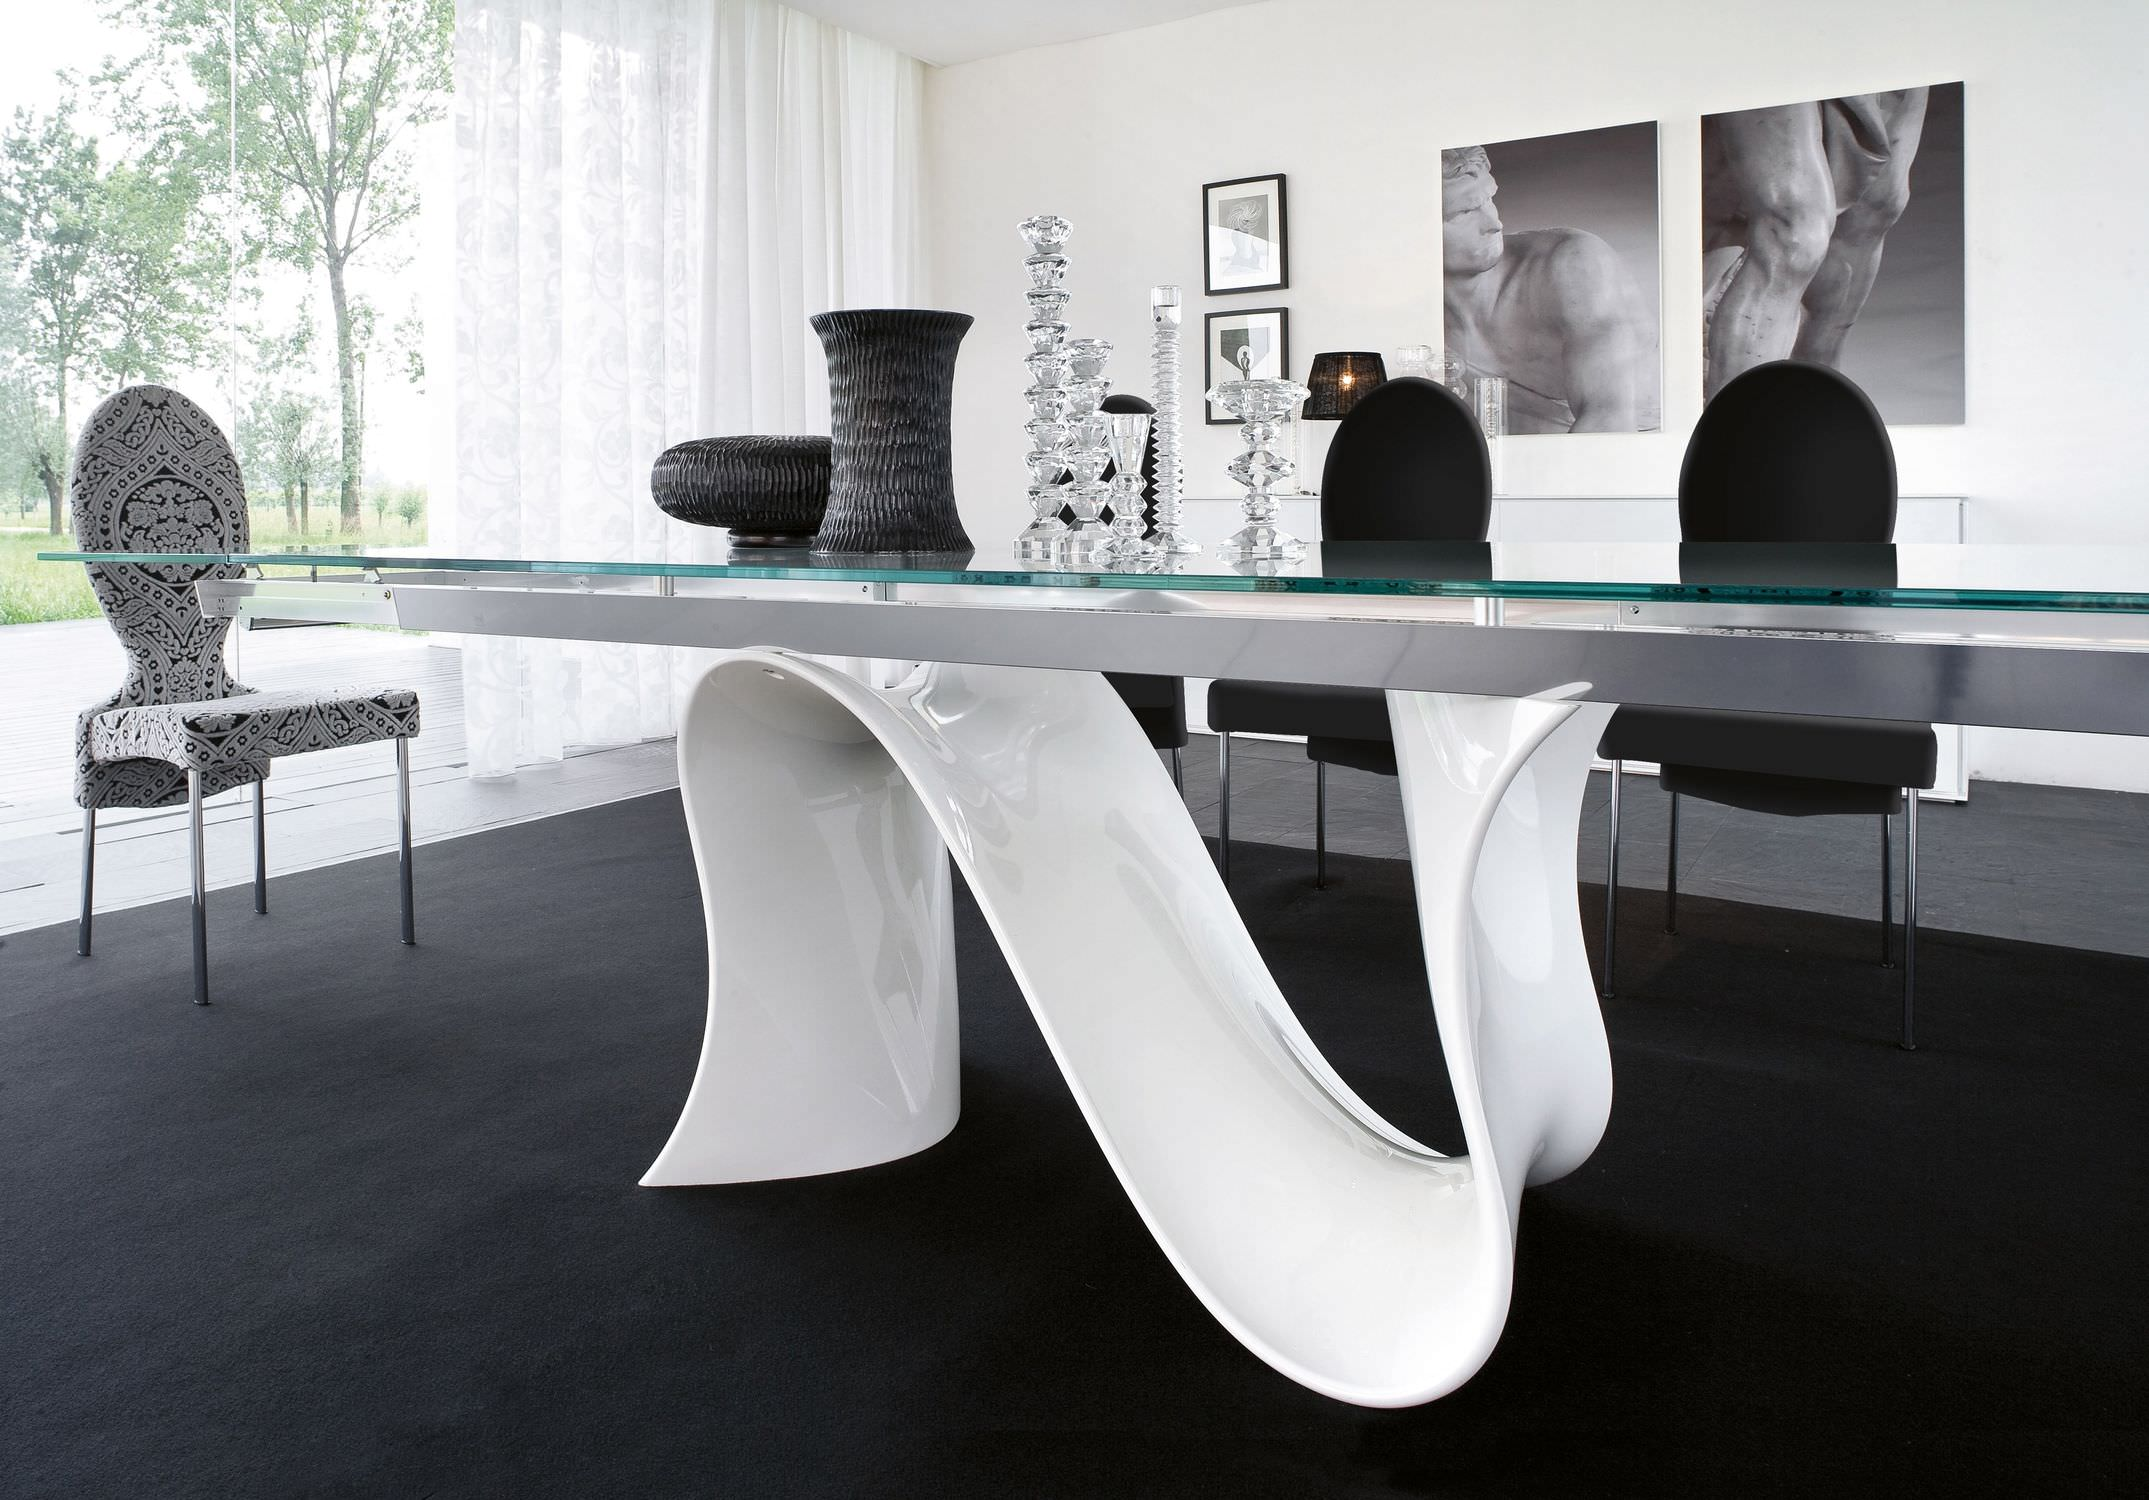 Top 5 Interior Designers at BDNY 2016 bdny 2016 Top 5 Interior Designers at BDNY 2016 Elite Modern Dining Tangent Glass Top Table Modern Furniture within Elegant Modern Dining Table 1